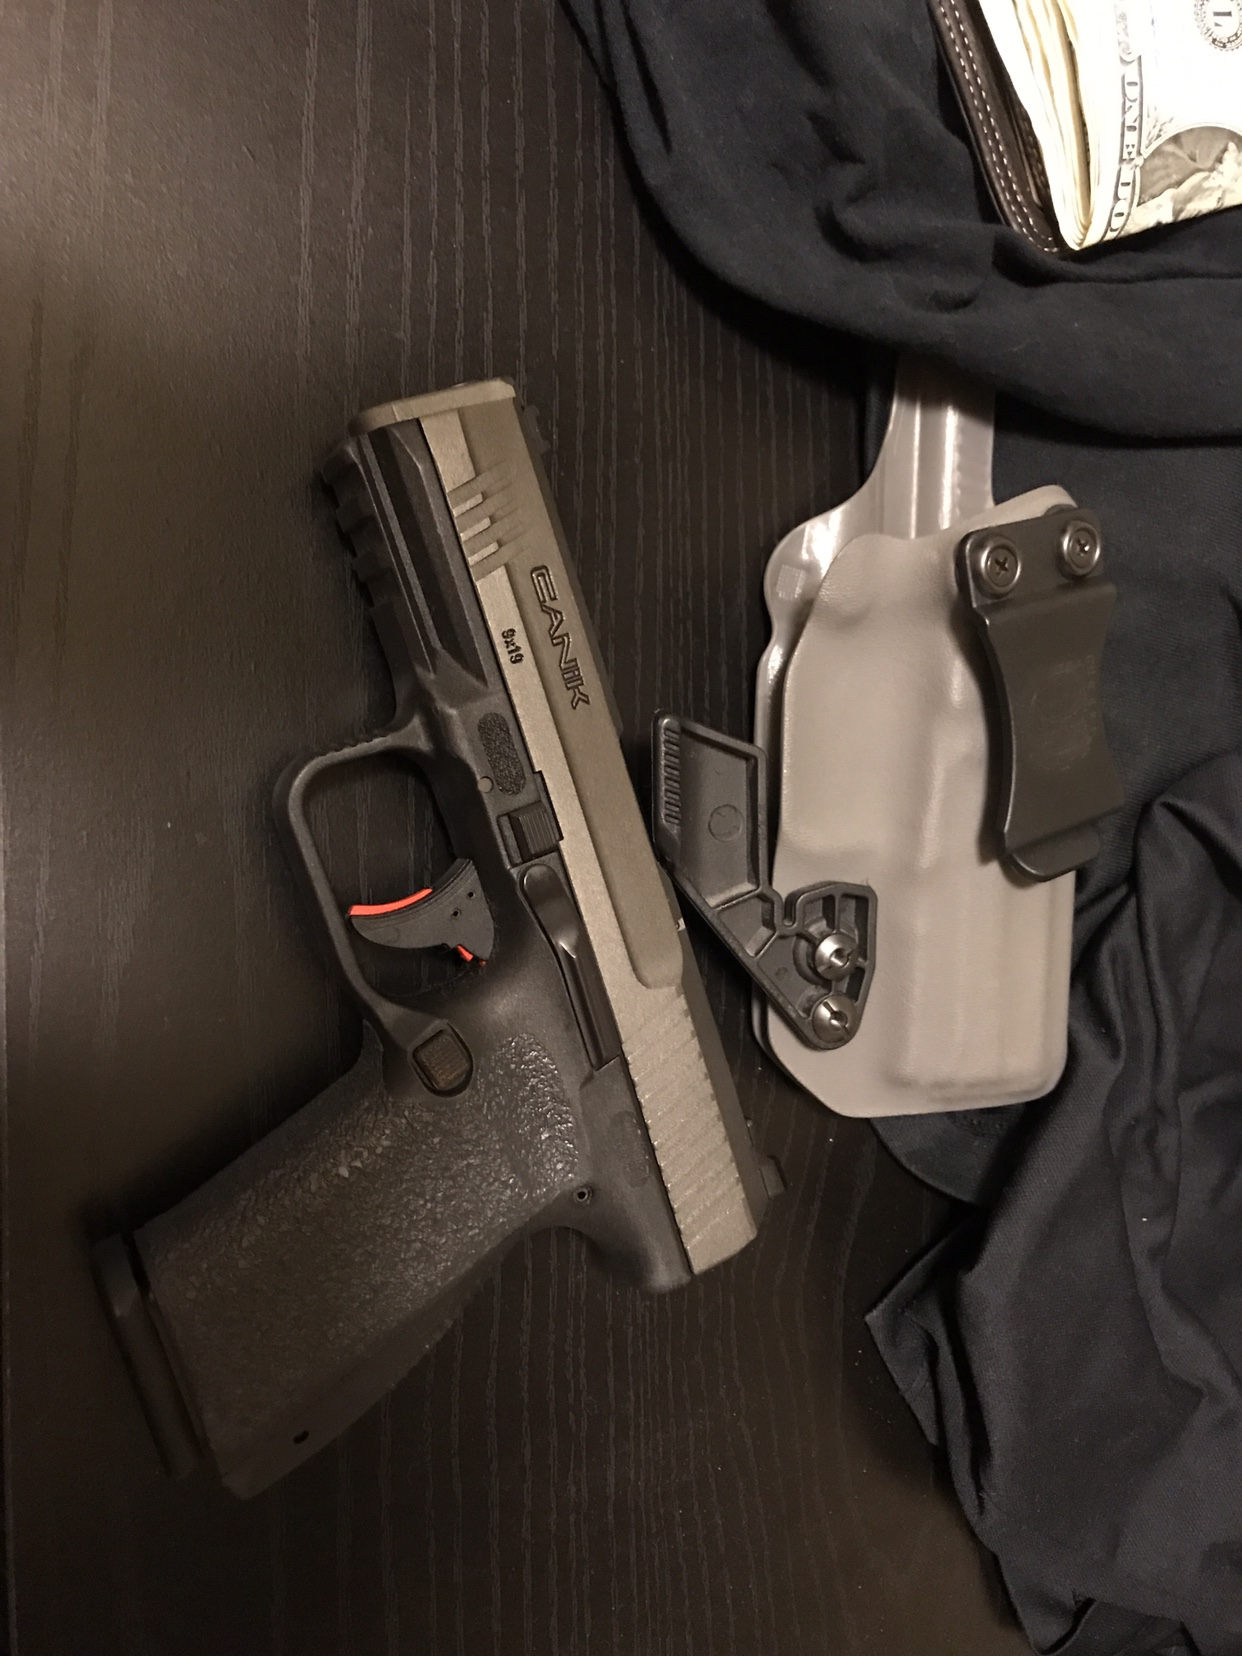 Canik tp9sf elite new For Sale | Trash Pile Classifieds | The